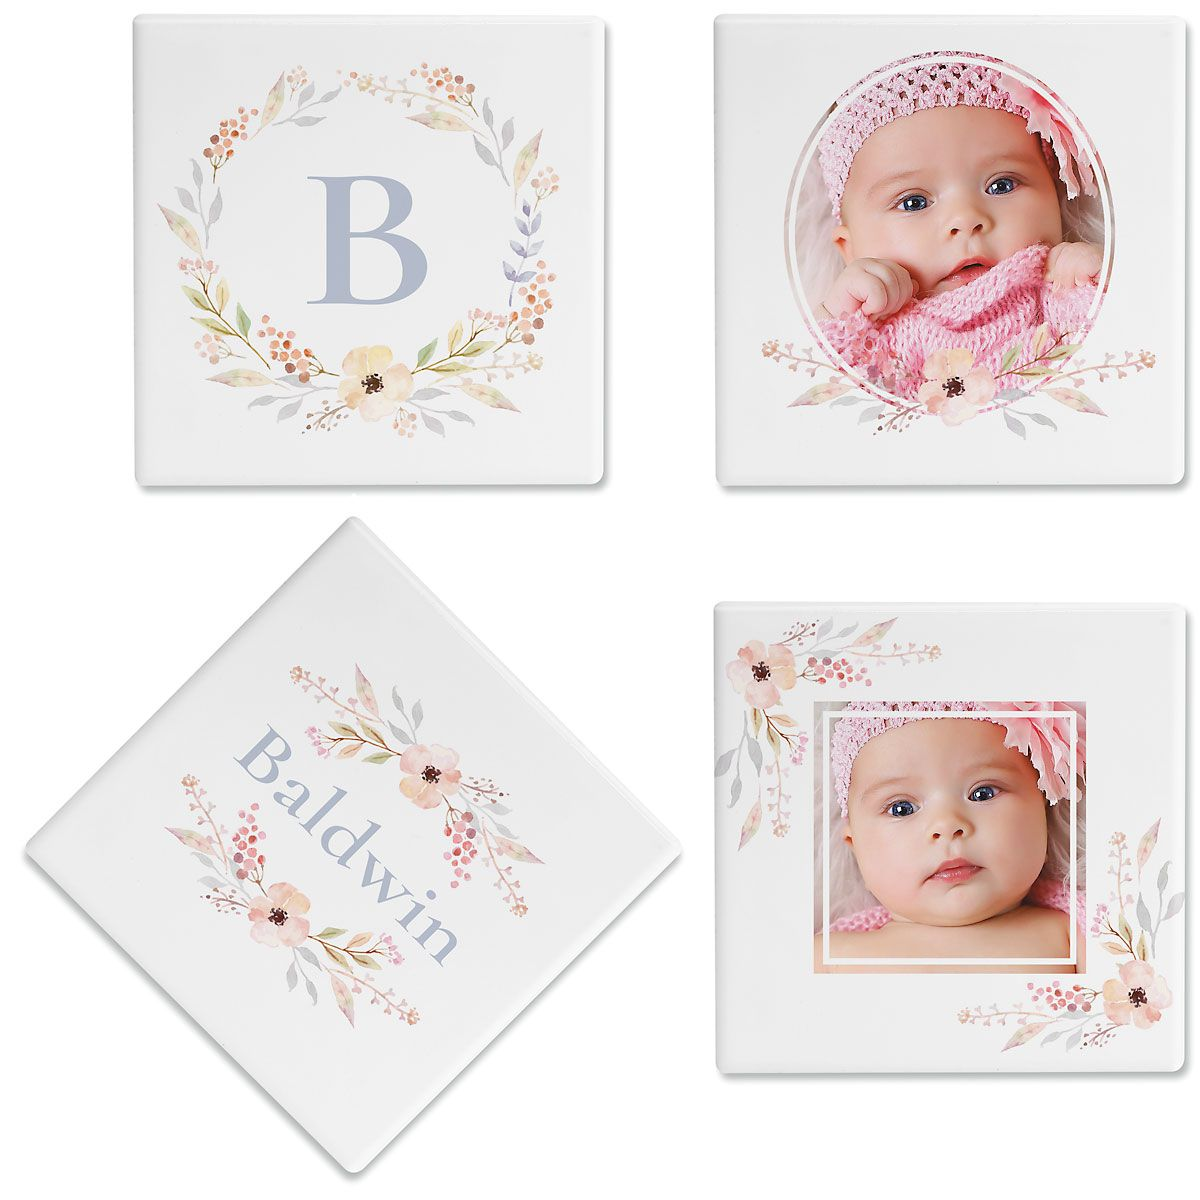 Floral Frame Personalized Photo Coasters